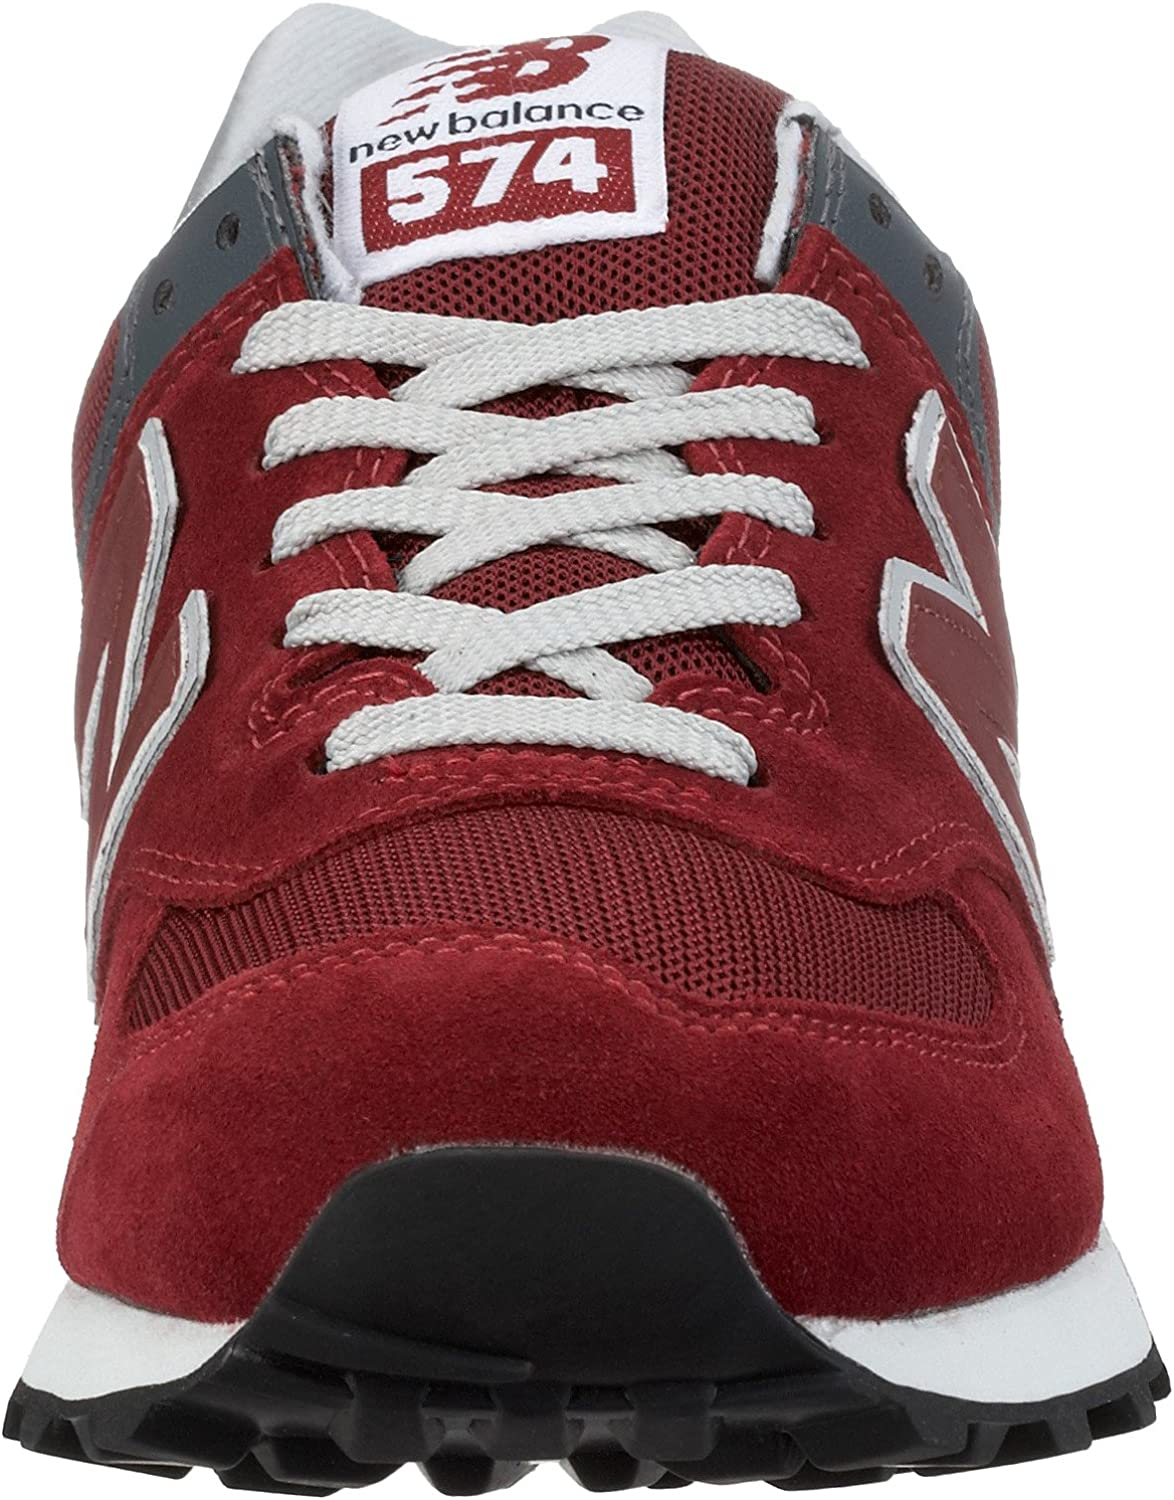 new balance men's trainers 574 size 8